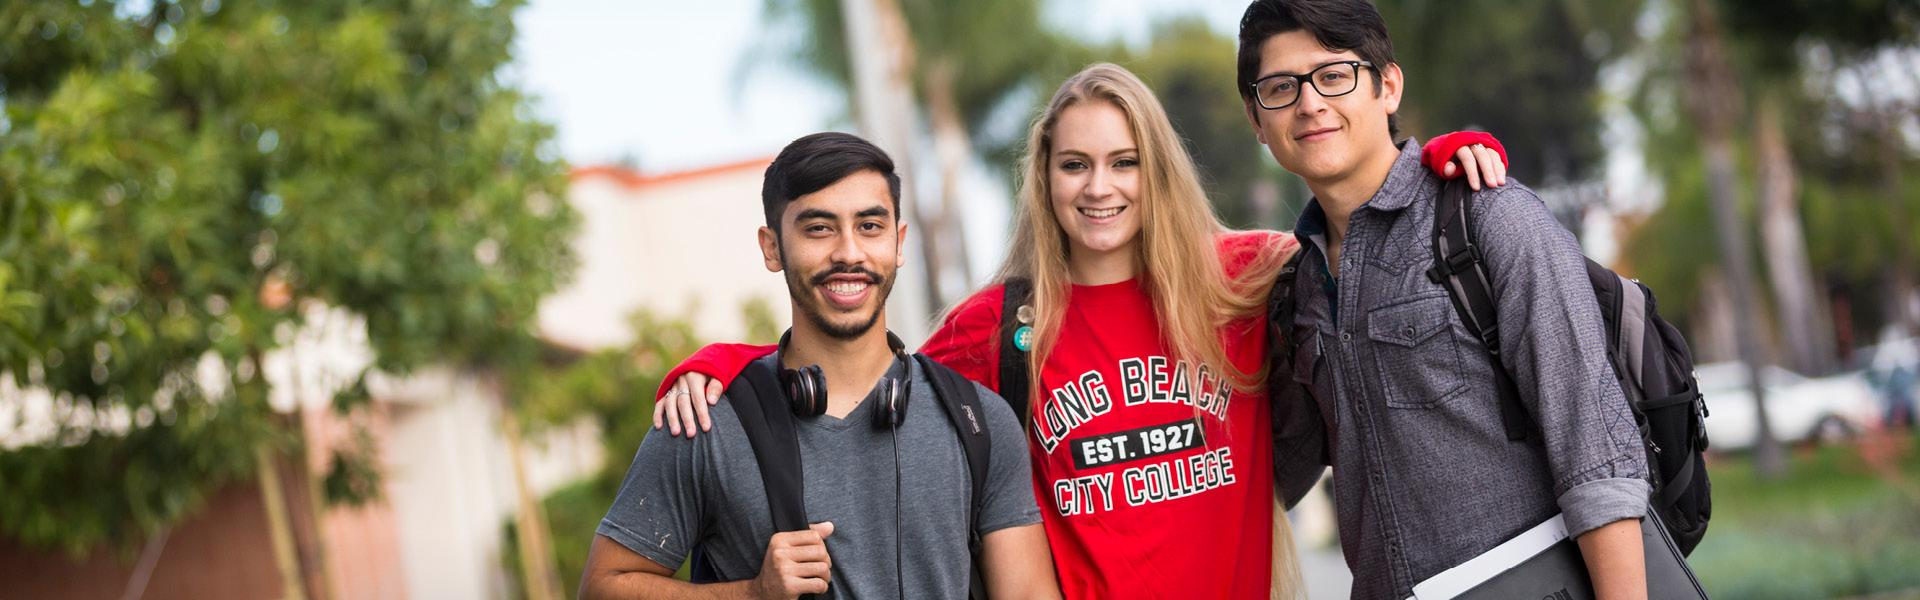 Three students standing together on campus.